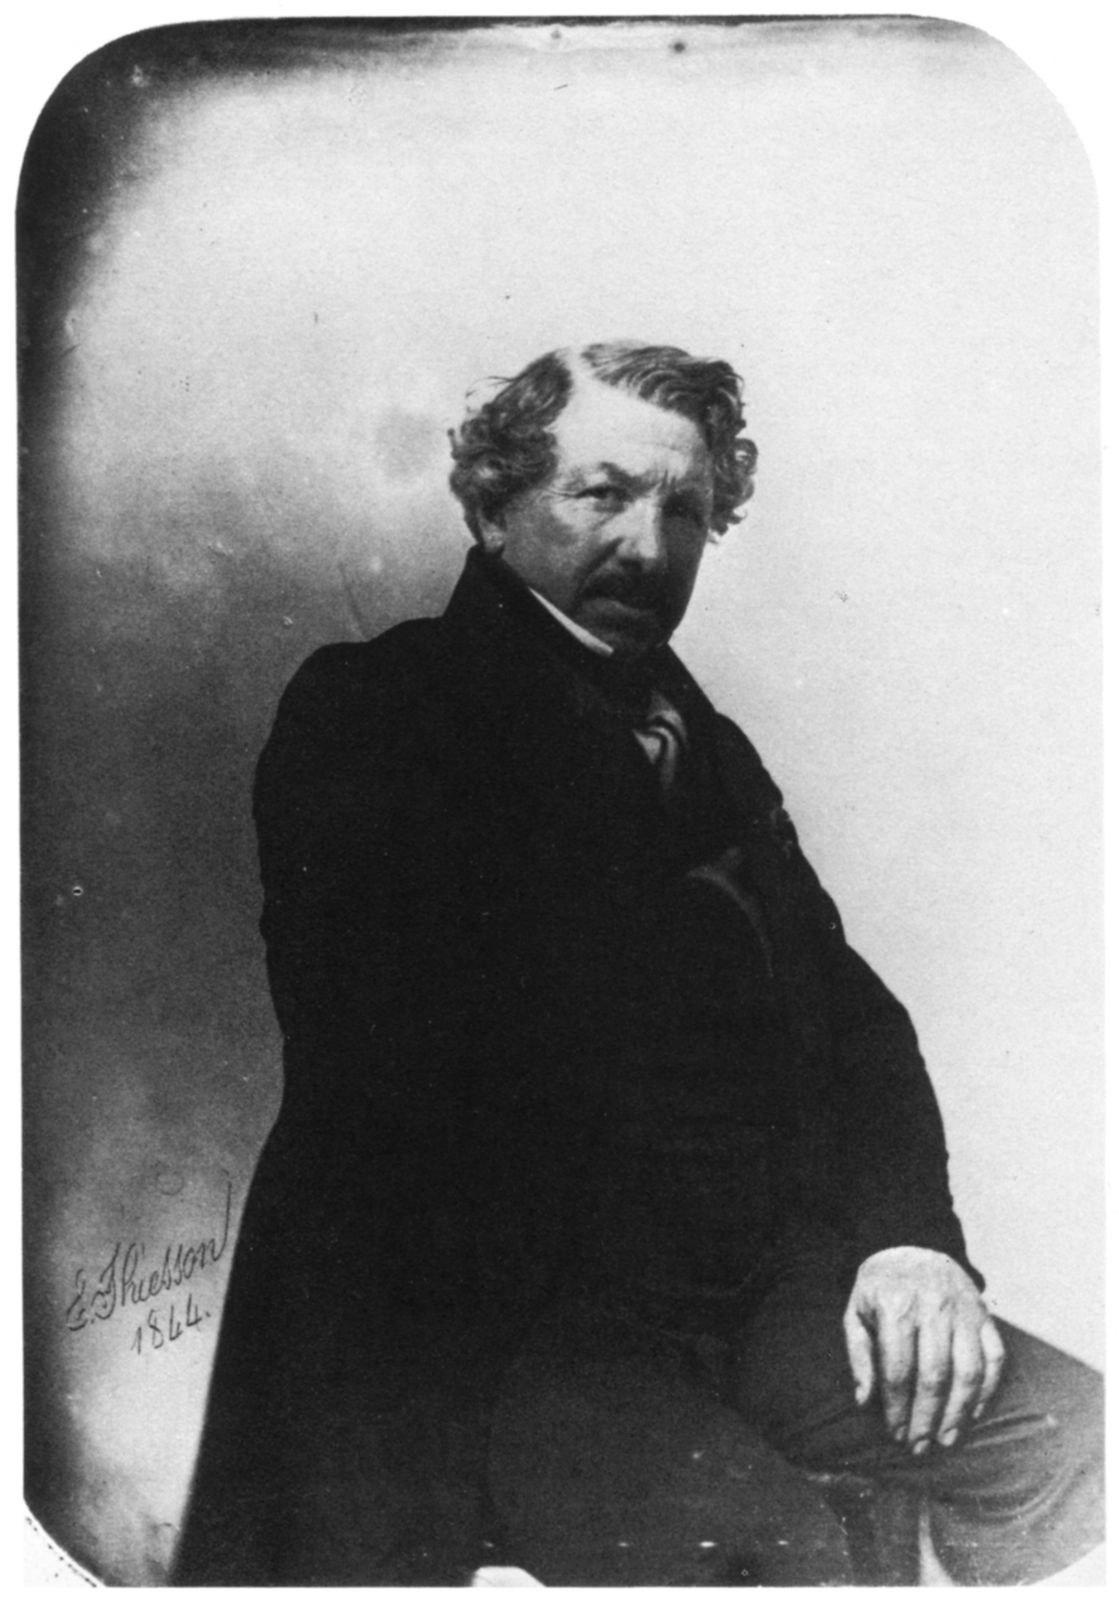 The reel foto félix nadar celebrity photographer of the 19th centuryinventor louis daguerre